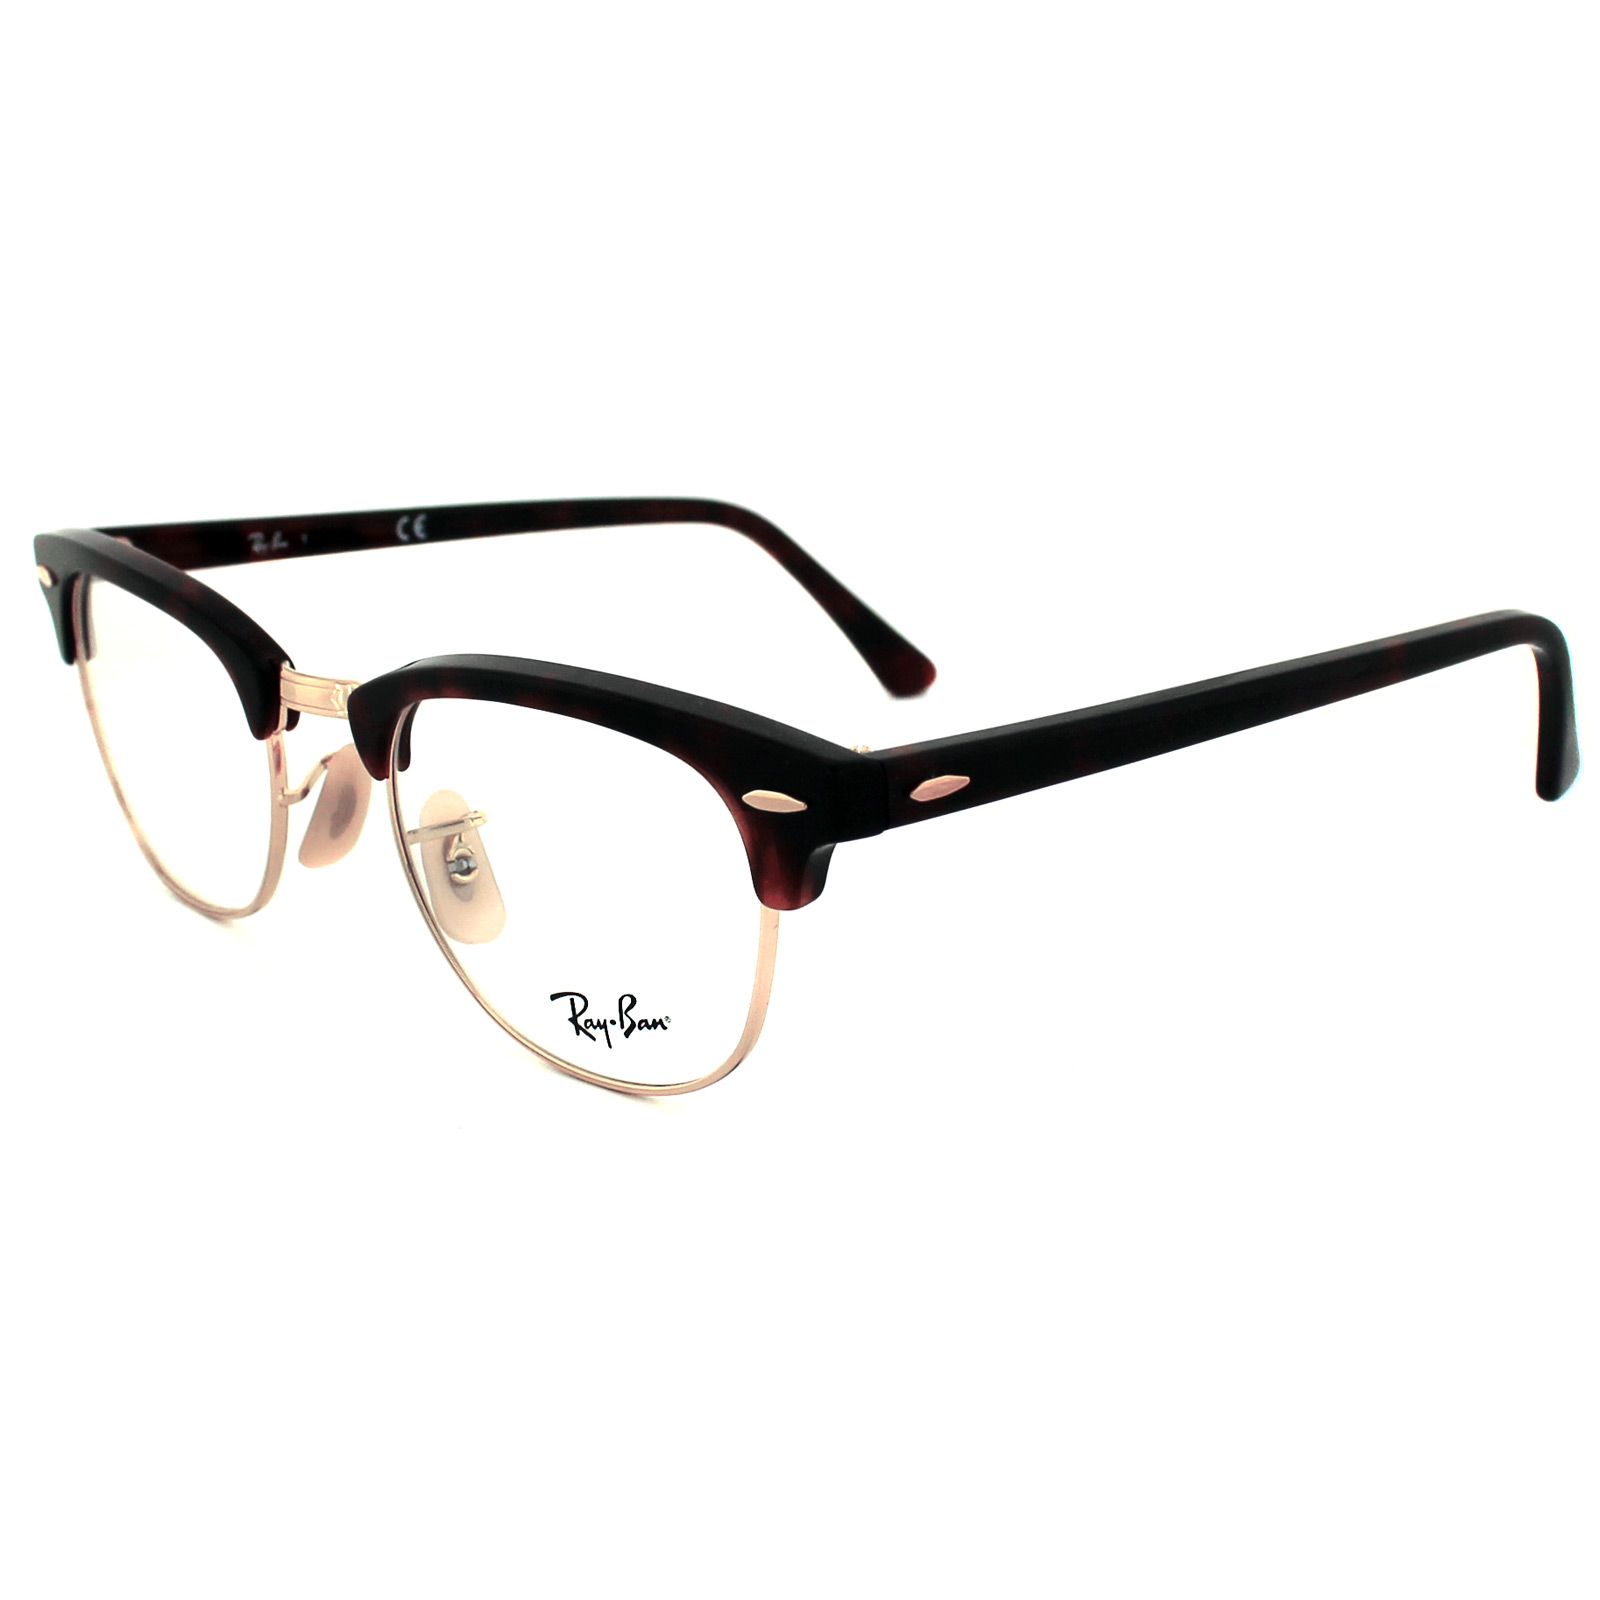 27f9921788 Details about Ray-Ban Glasses Frames 5154 Clubmaster 2372 Red Havana 51mm